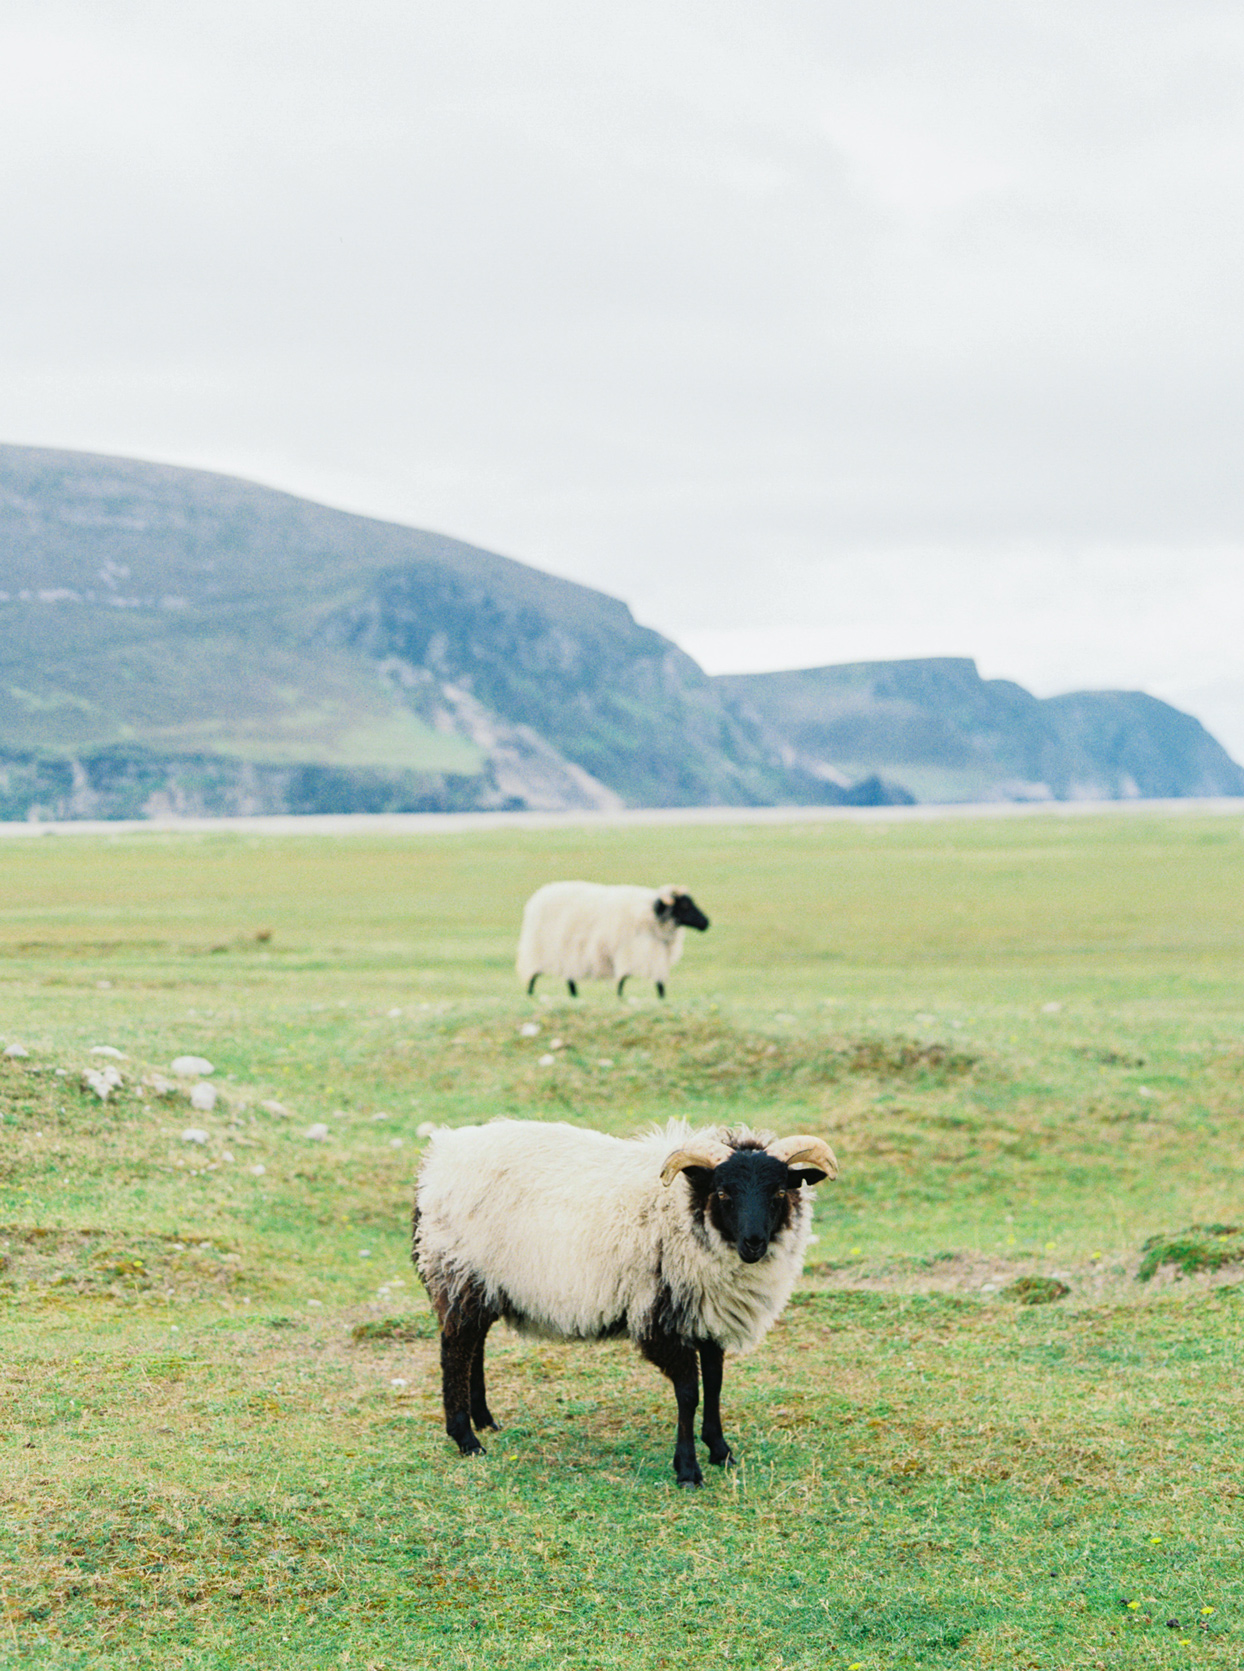 two sheep on grassy field in Ireland